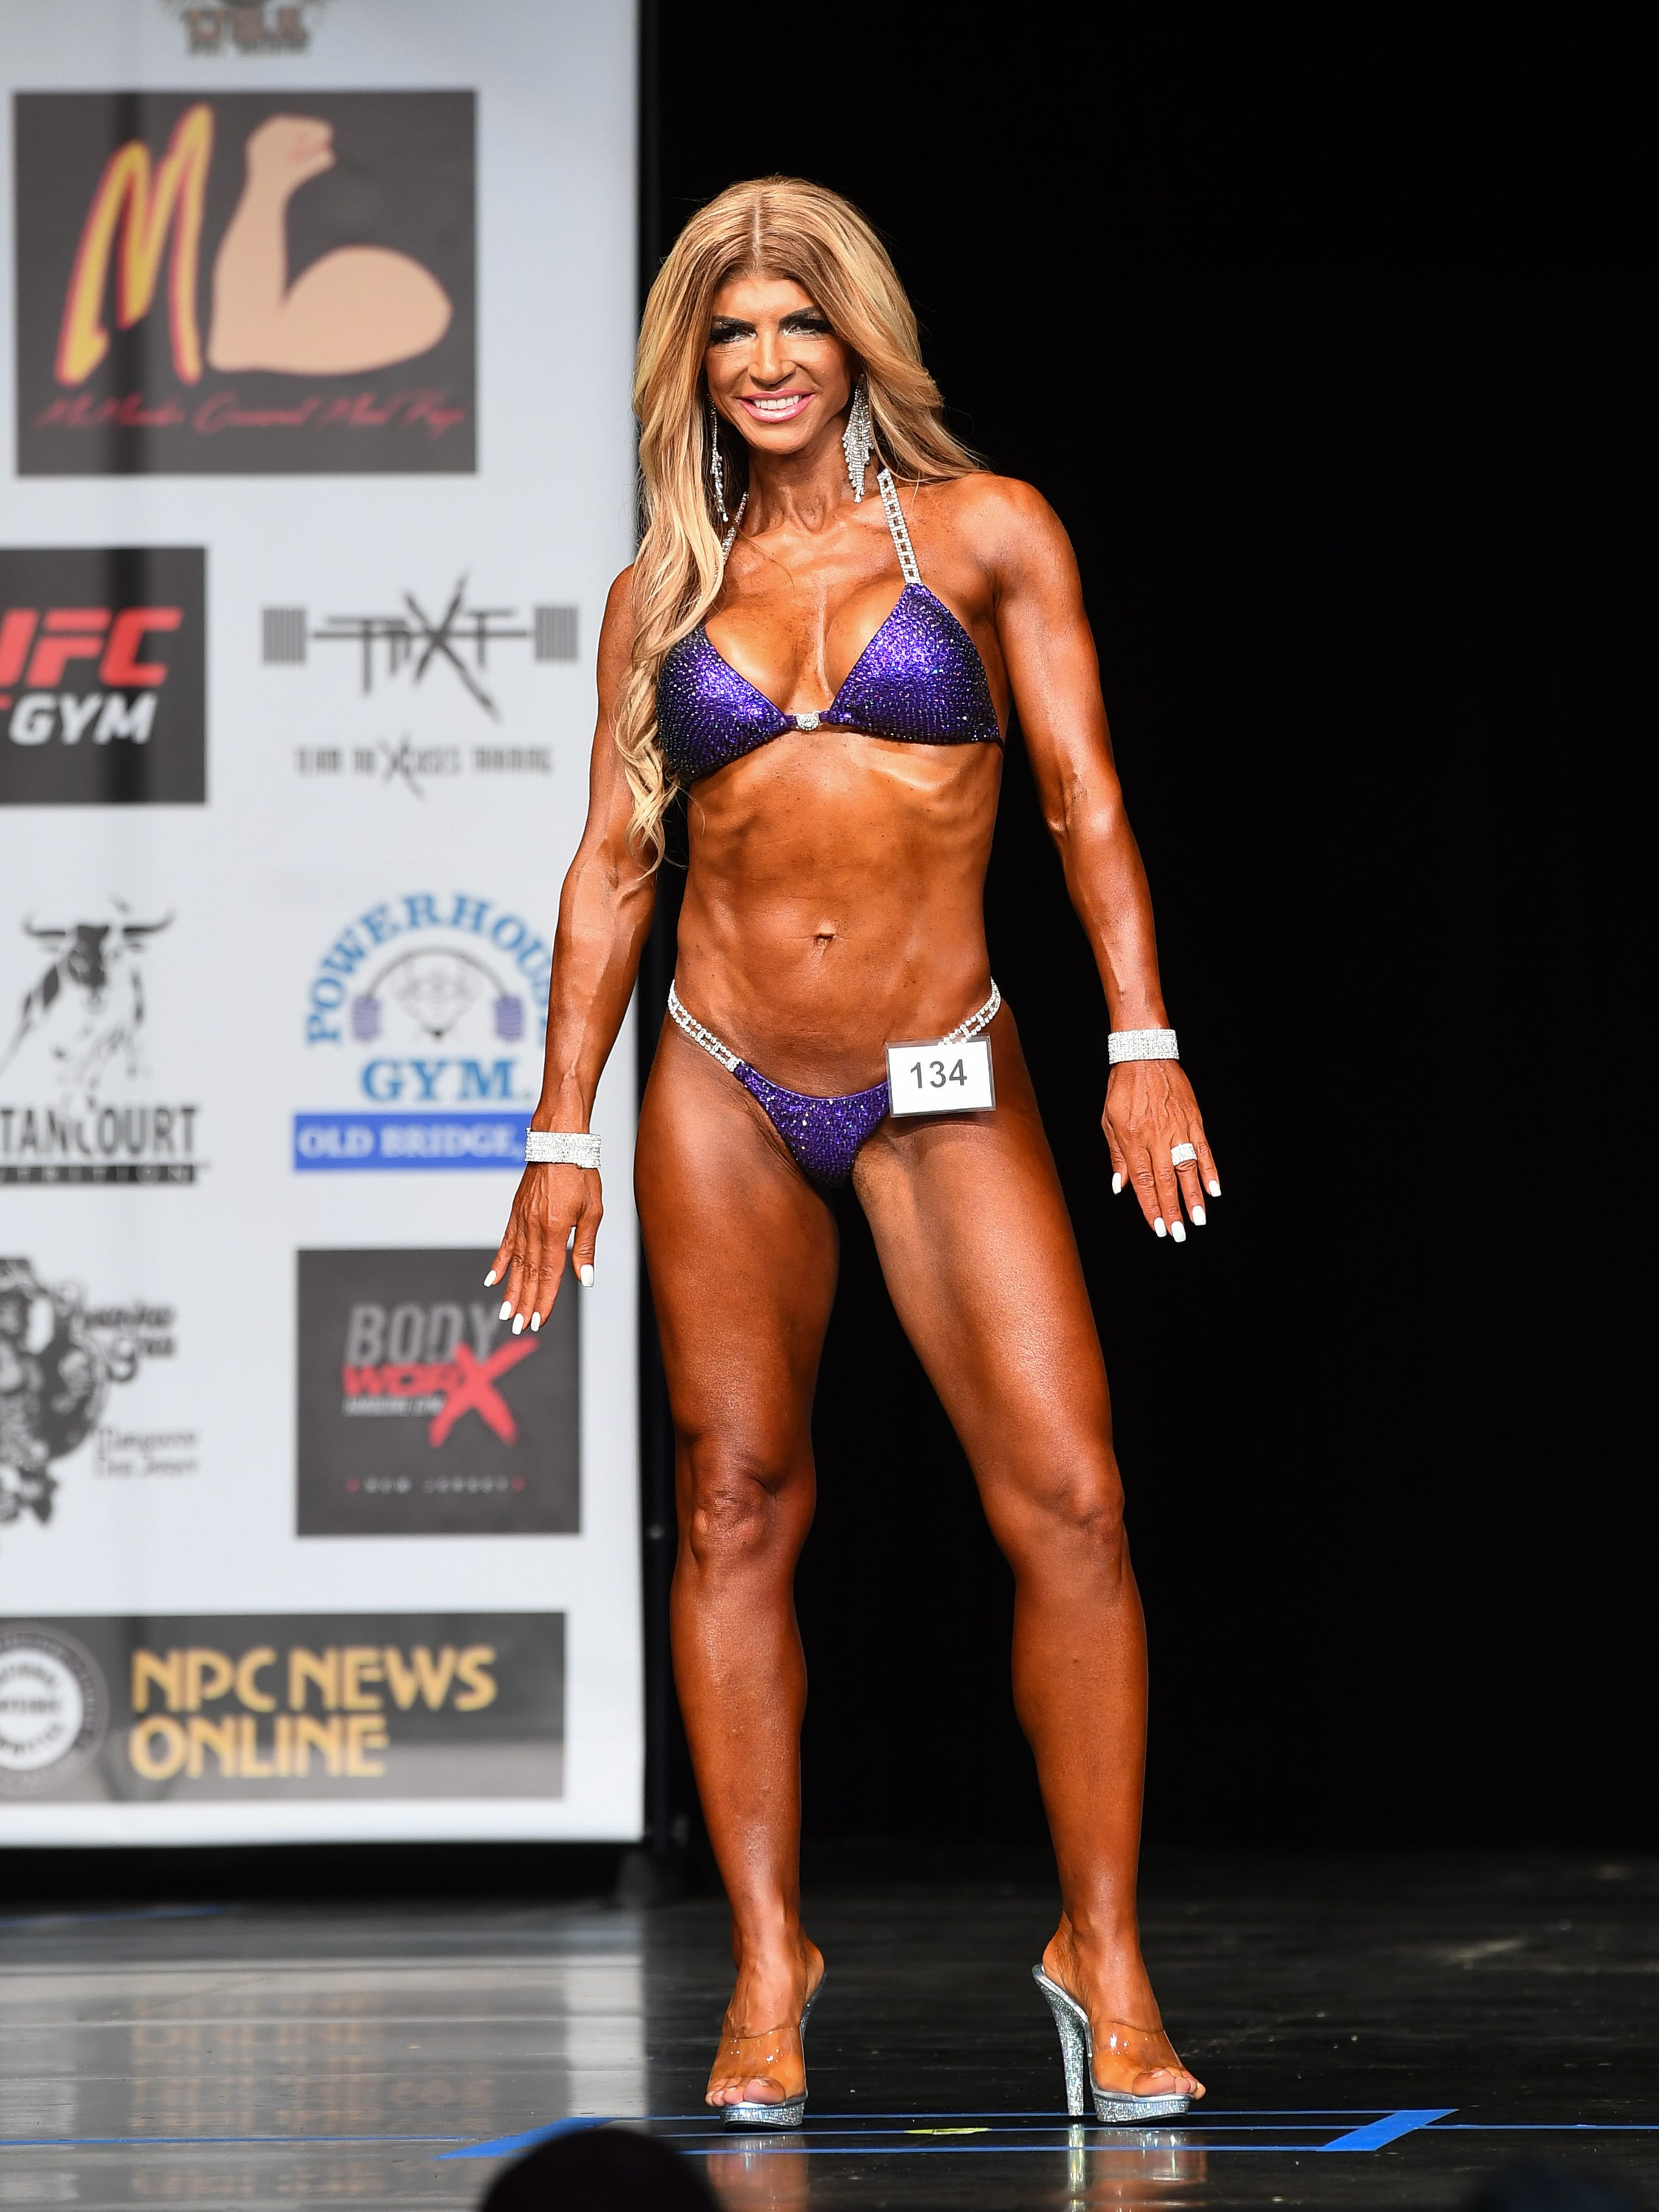 Real Housewives Star Teresa Giudice Is Now A Competitive Bodybuilder